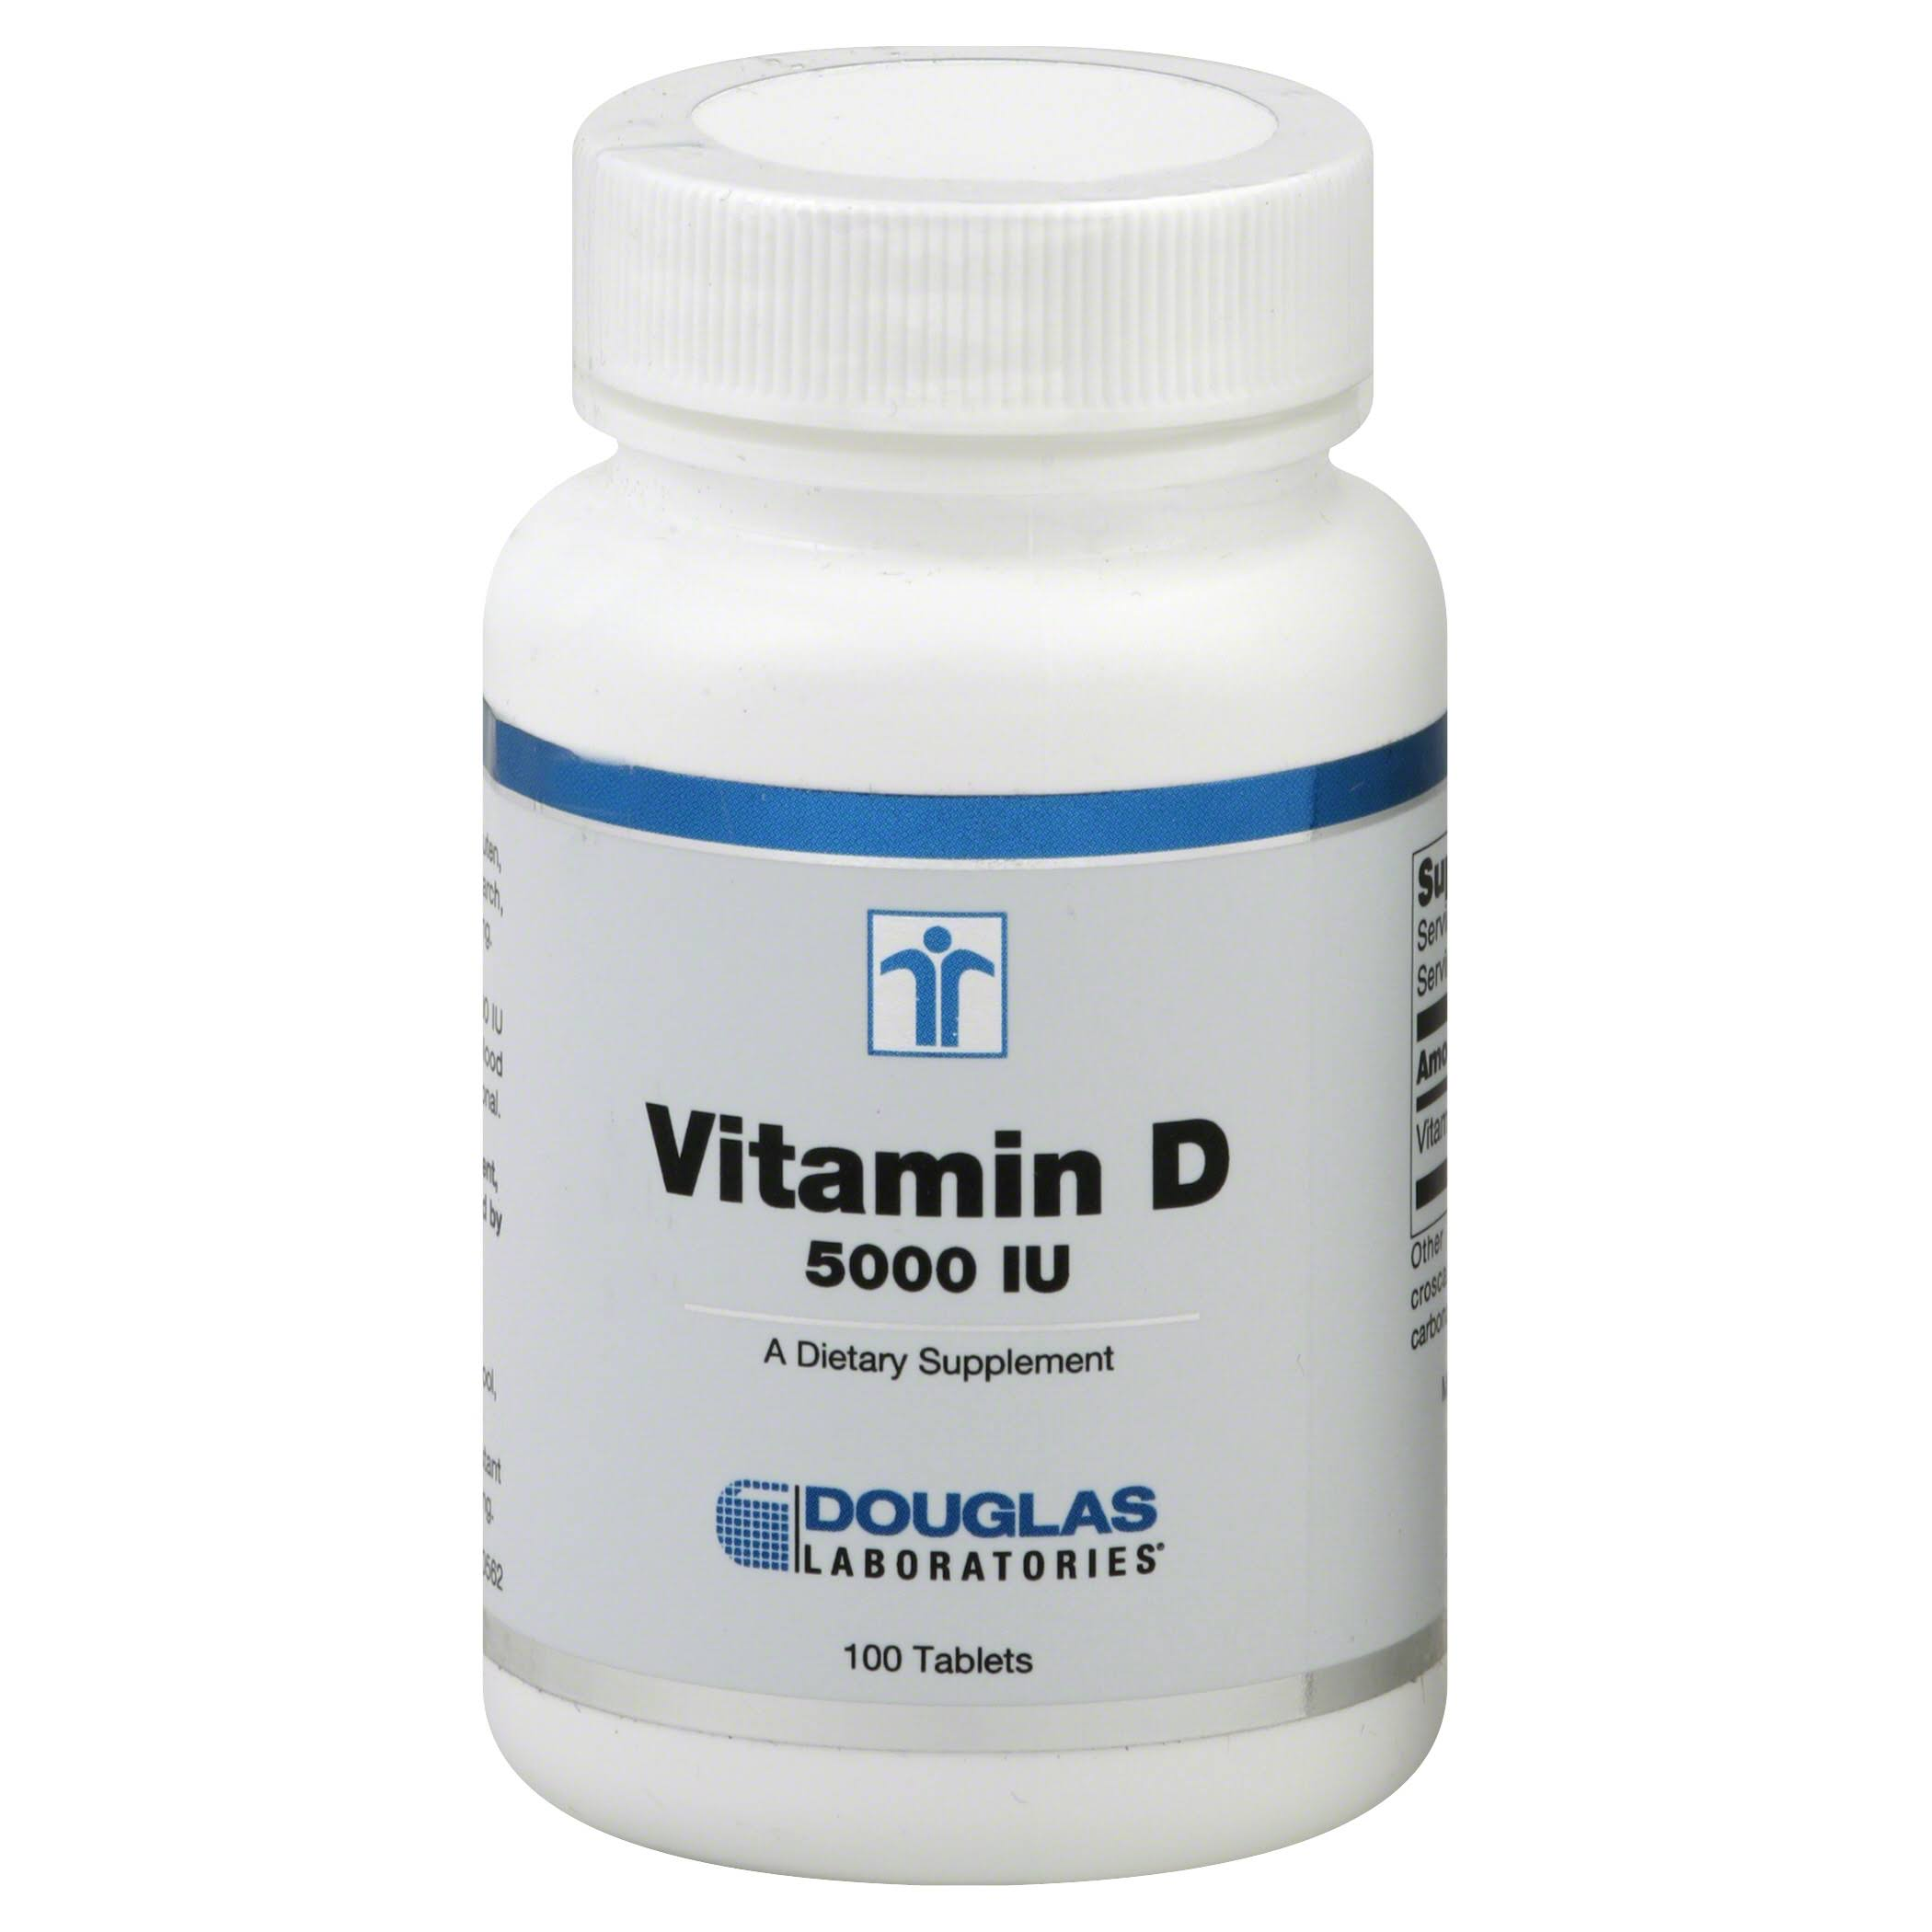 Douglas Laboratories Vitamin D Supplement - 5000 IU, 100 Tablets